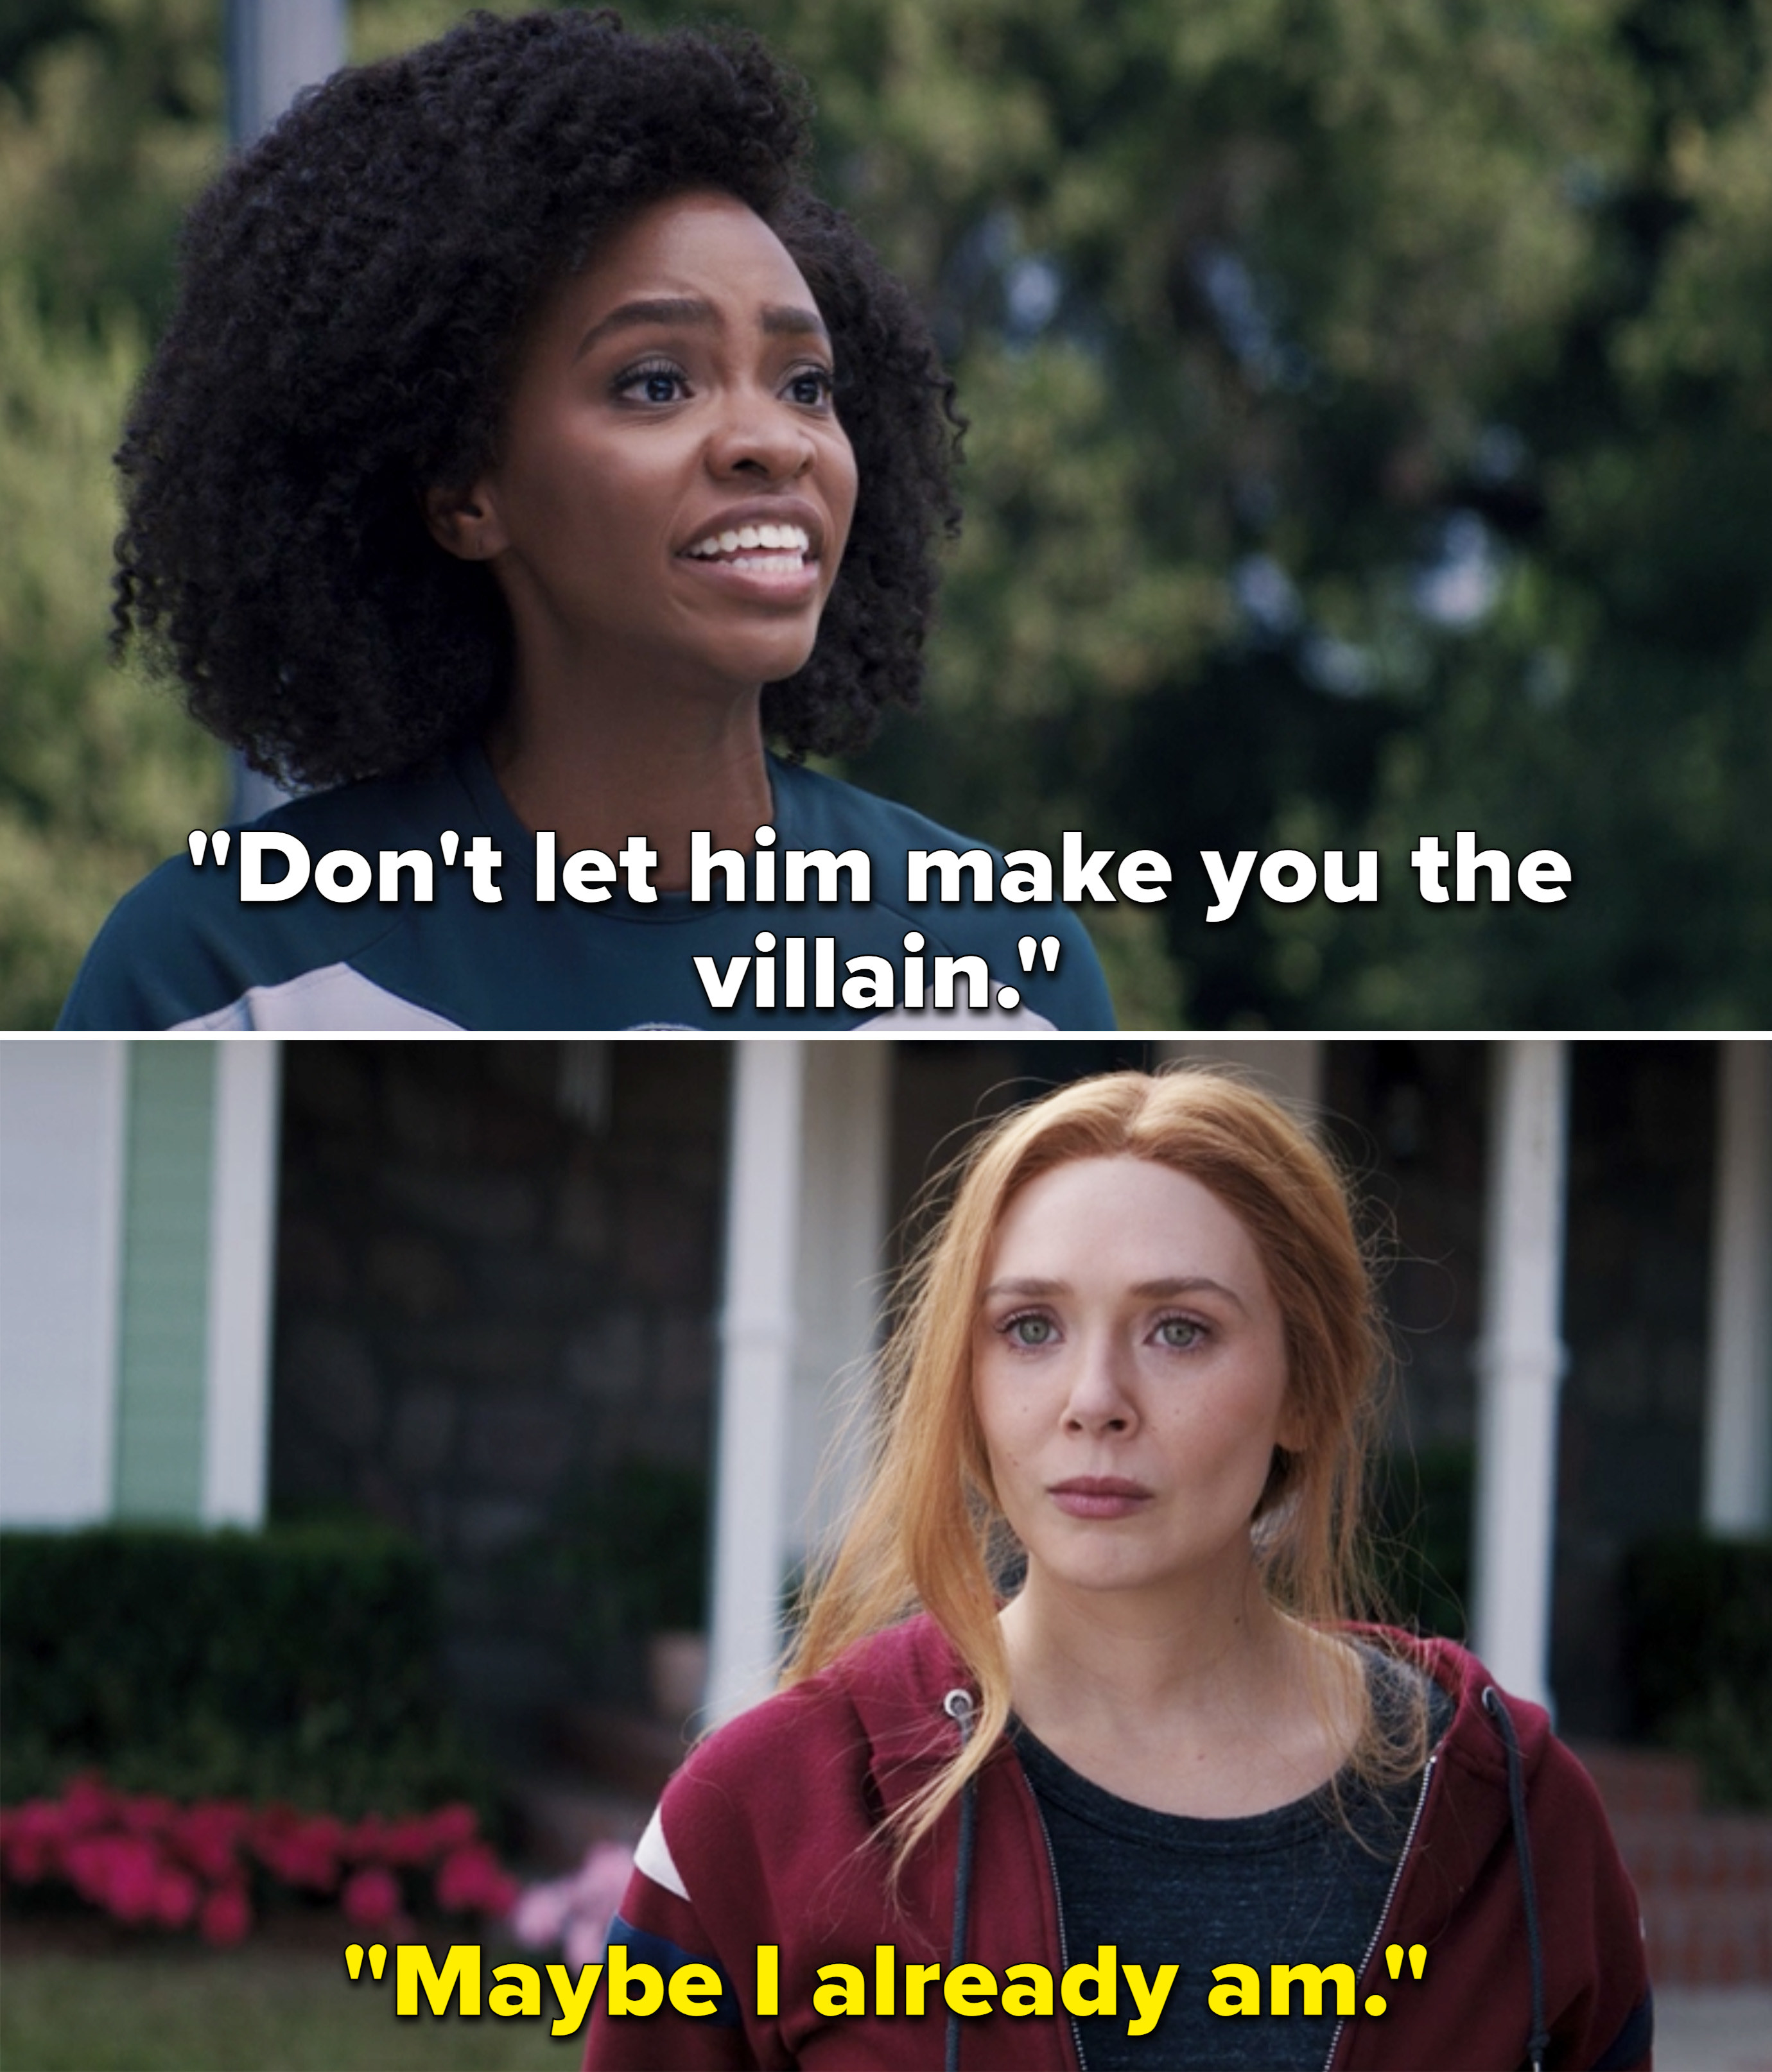 """Monica saying, """"Don't let him make you the villain"""" and Wanda responding, """"Maybe I already am"""""""